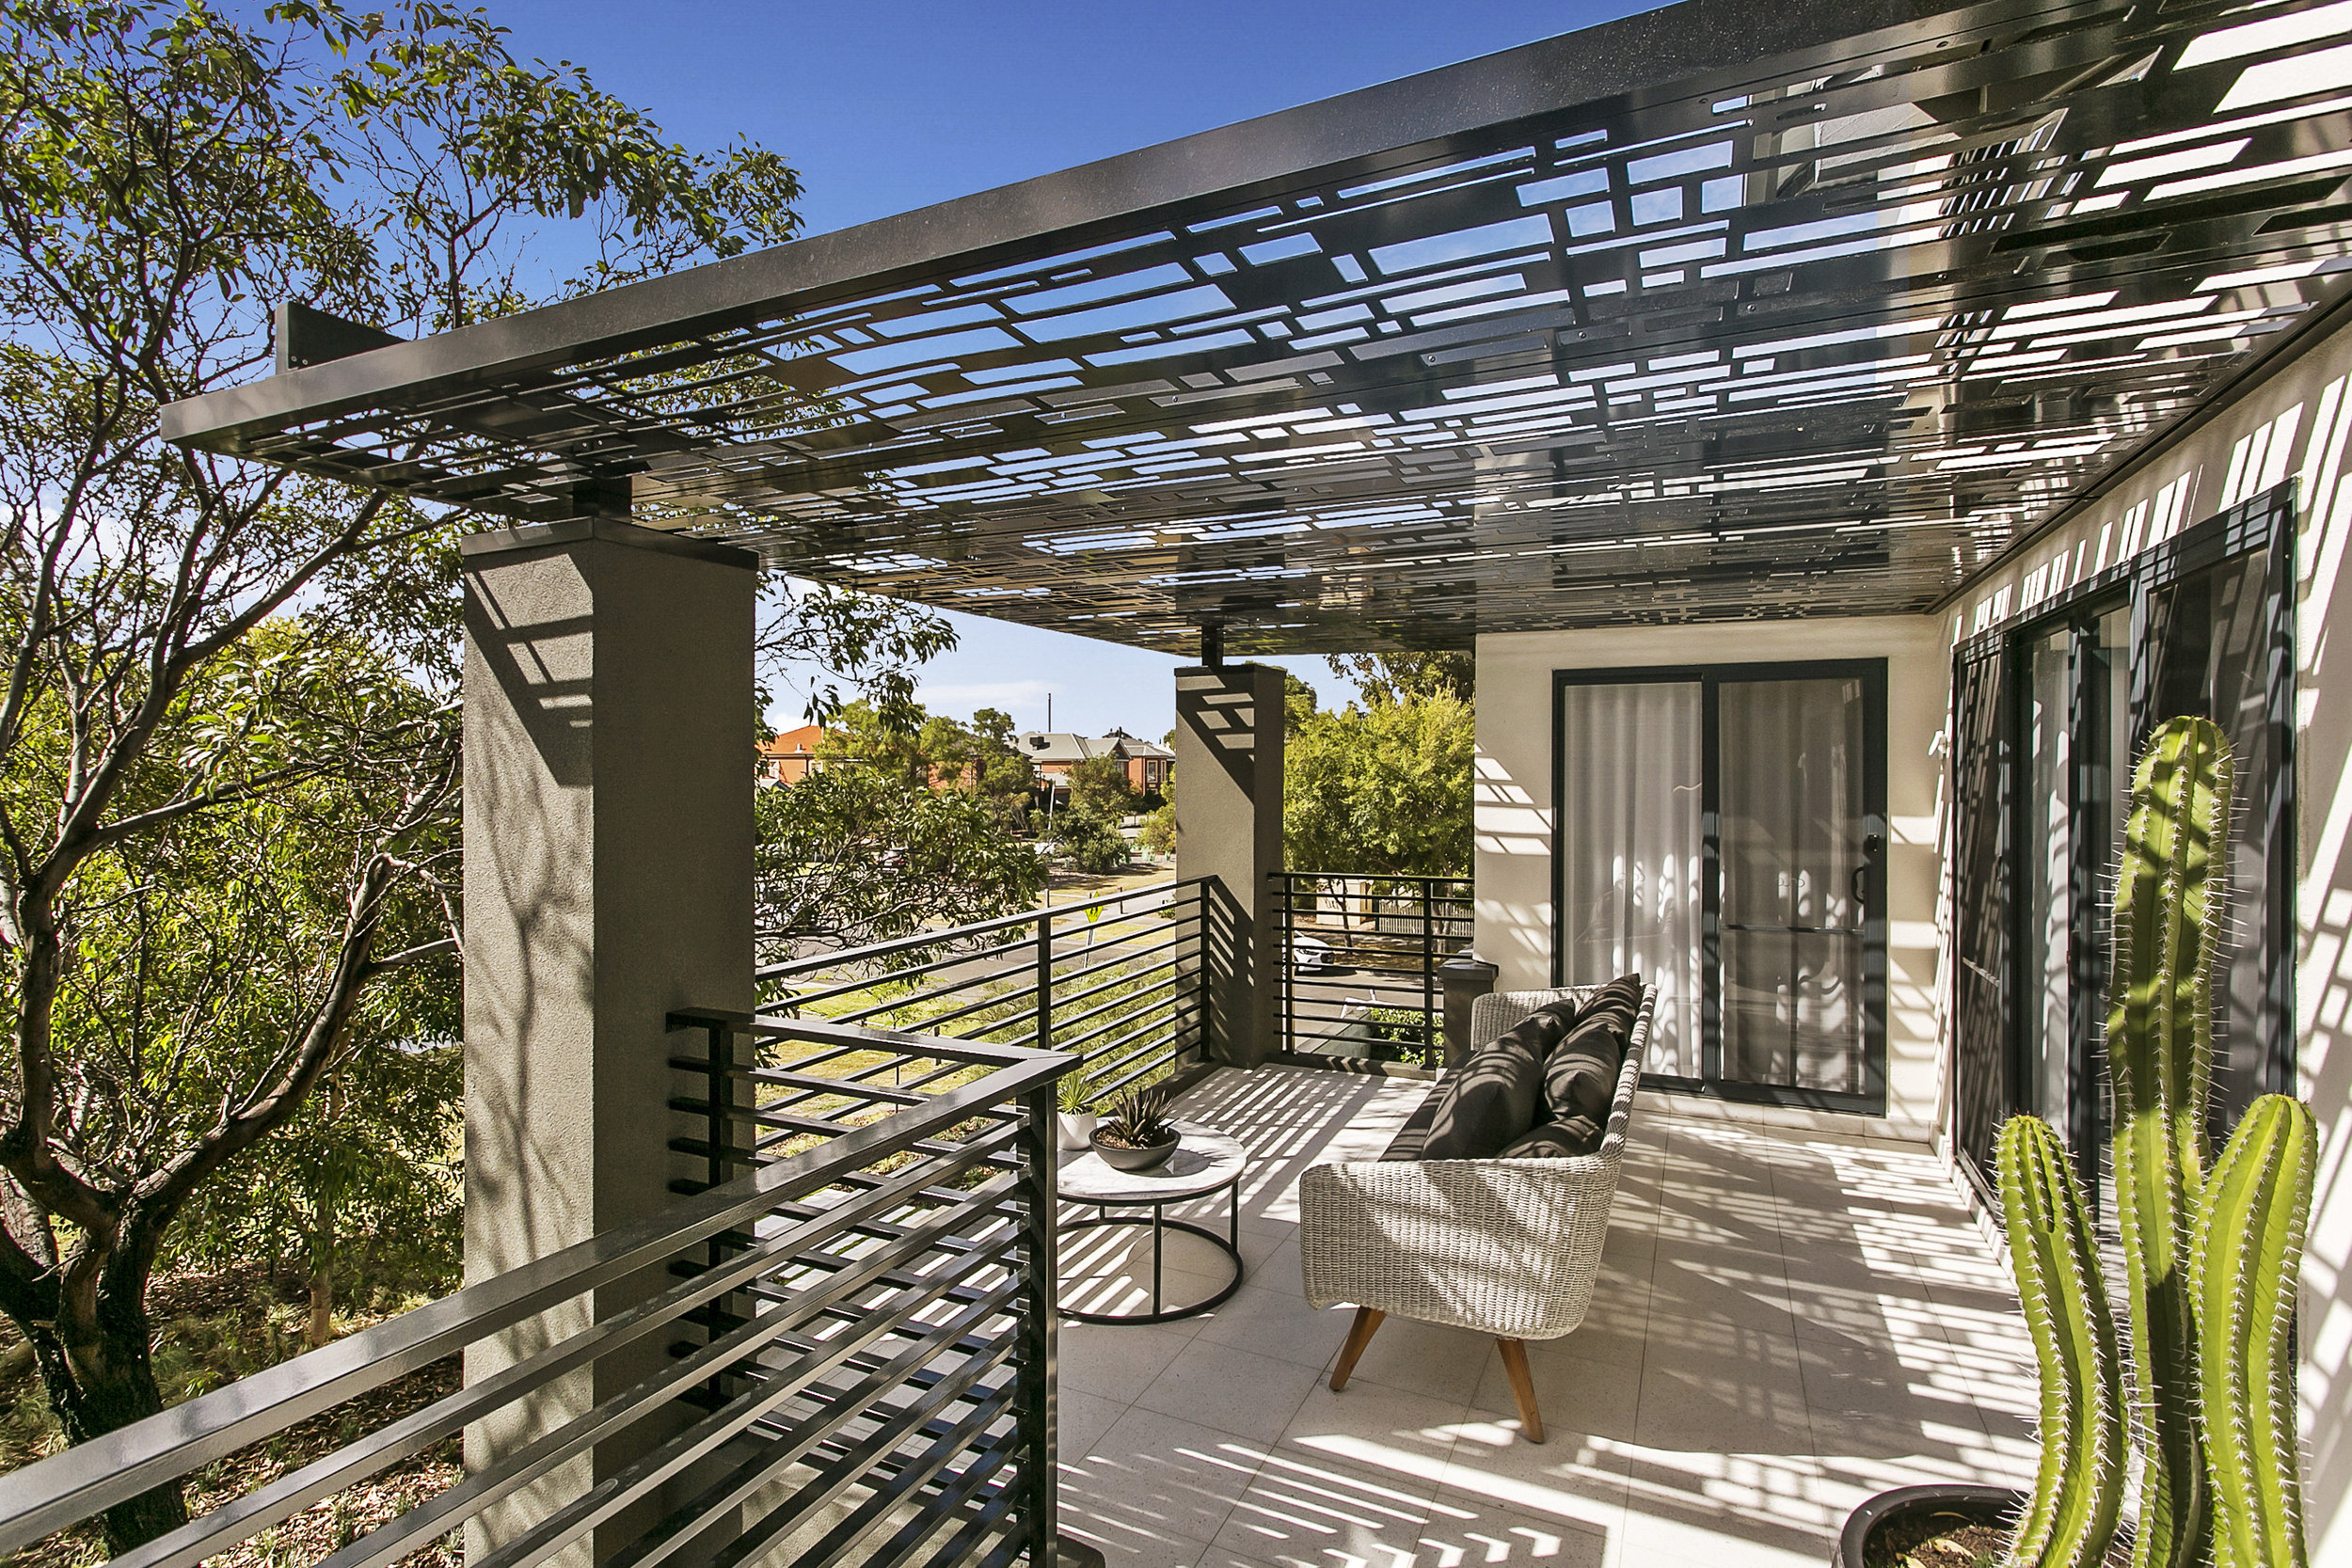 Screening was also used on the balcony roof as an addition feature and partial sun shade